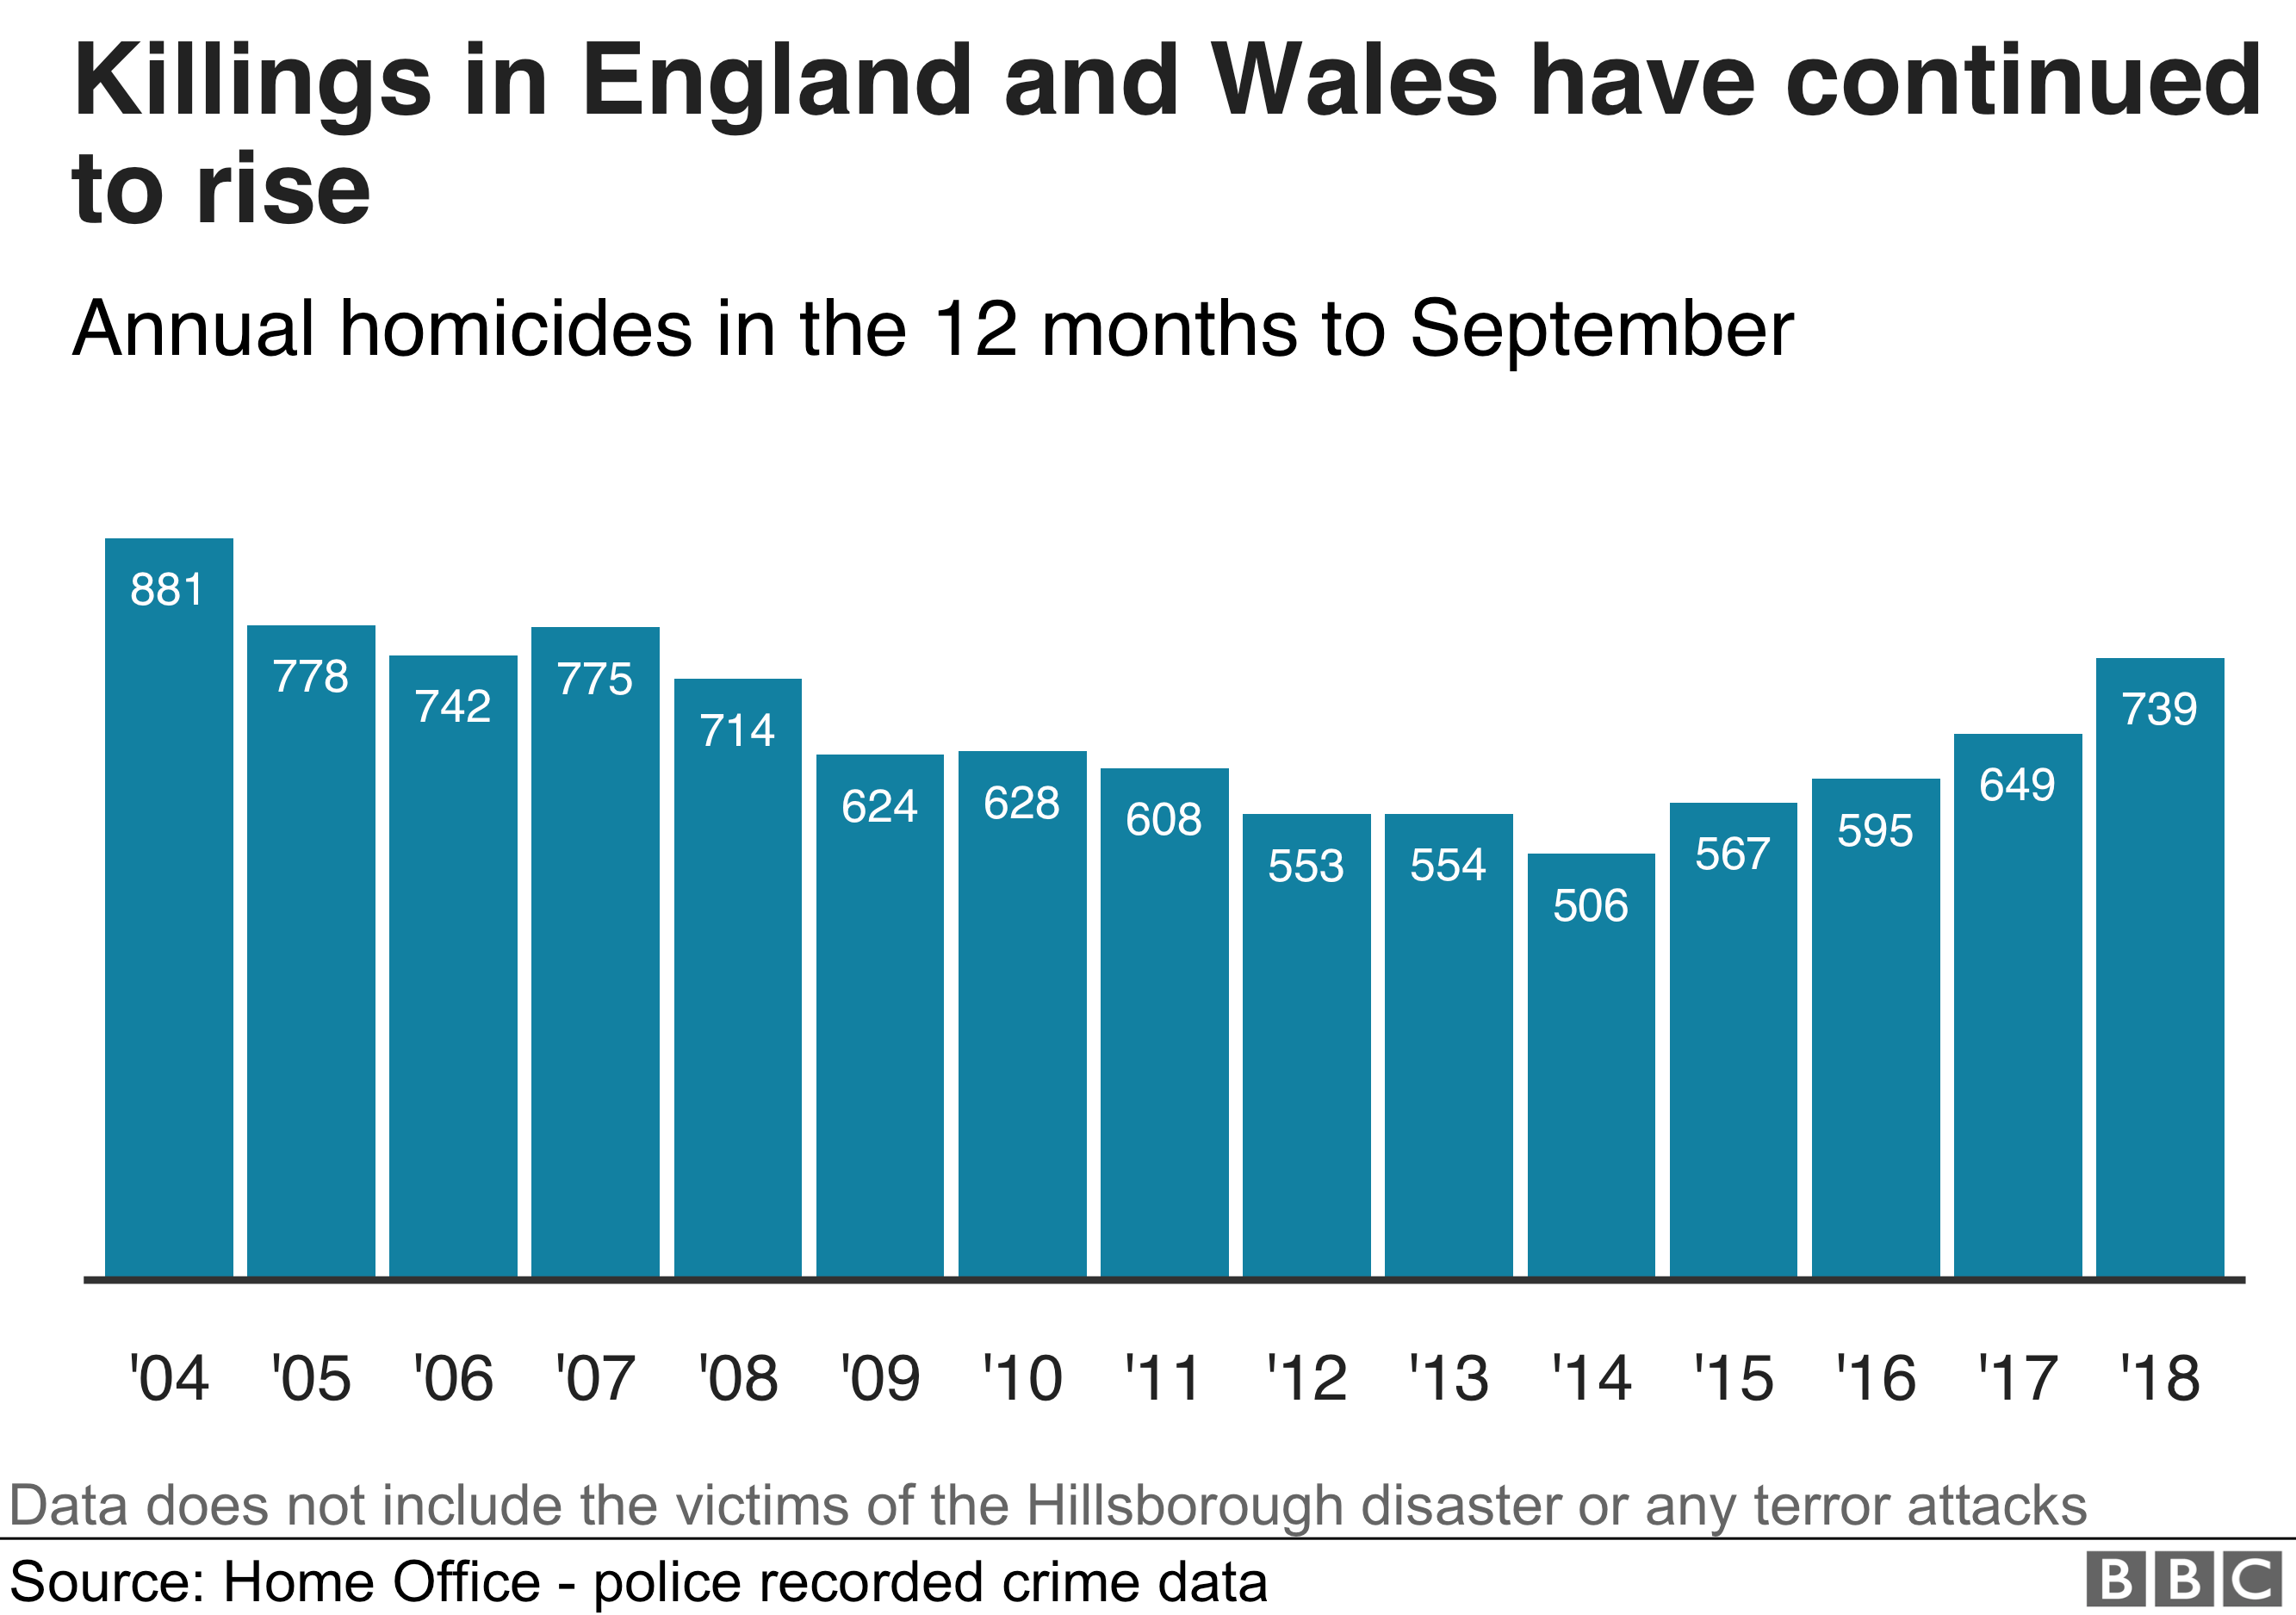 A chart showing the number of homicides